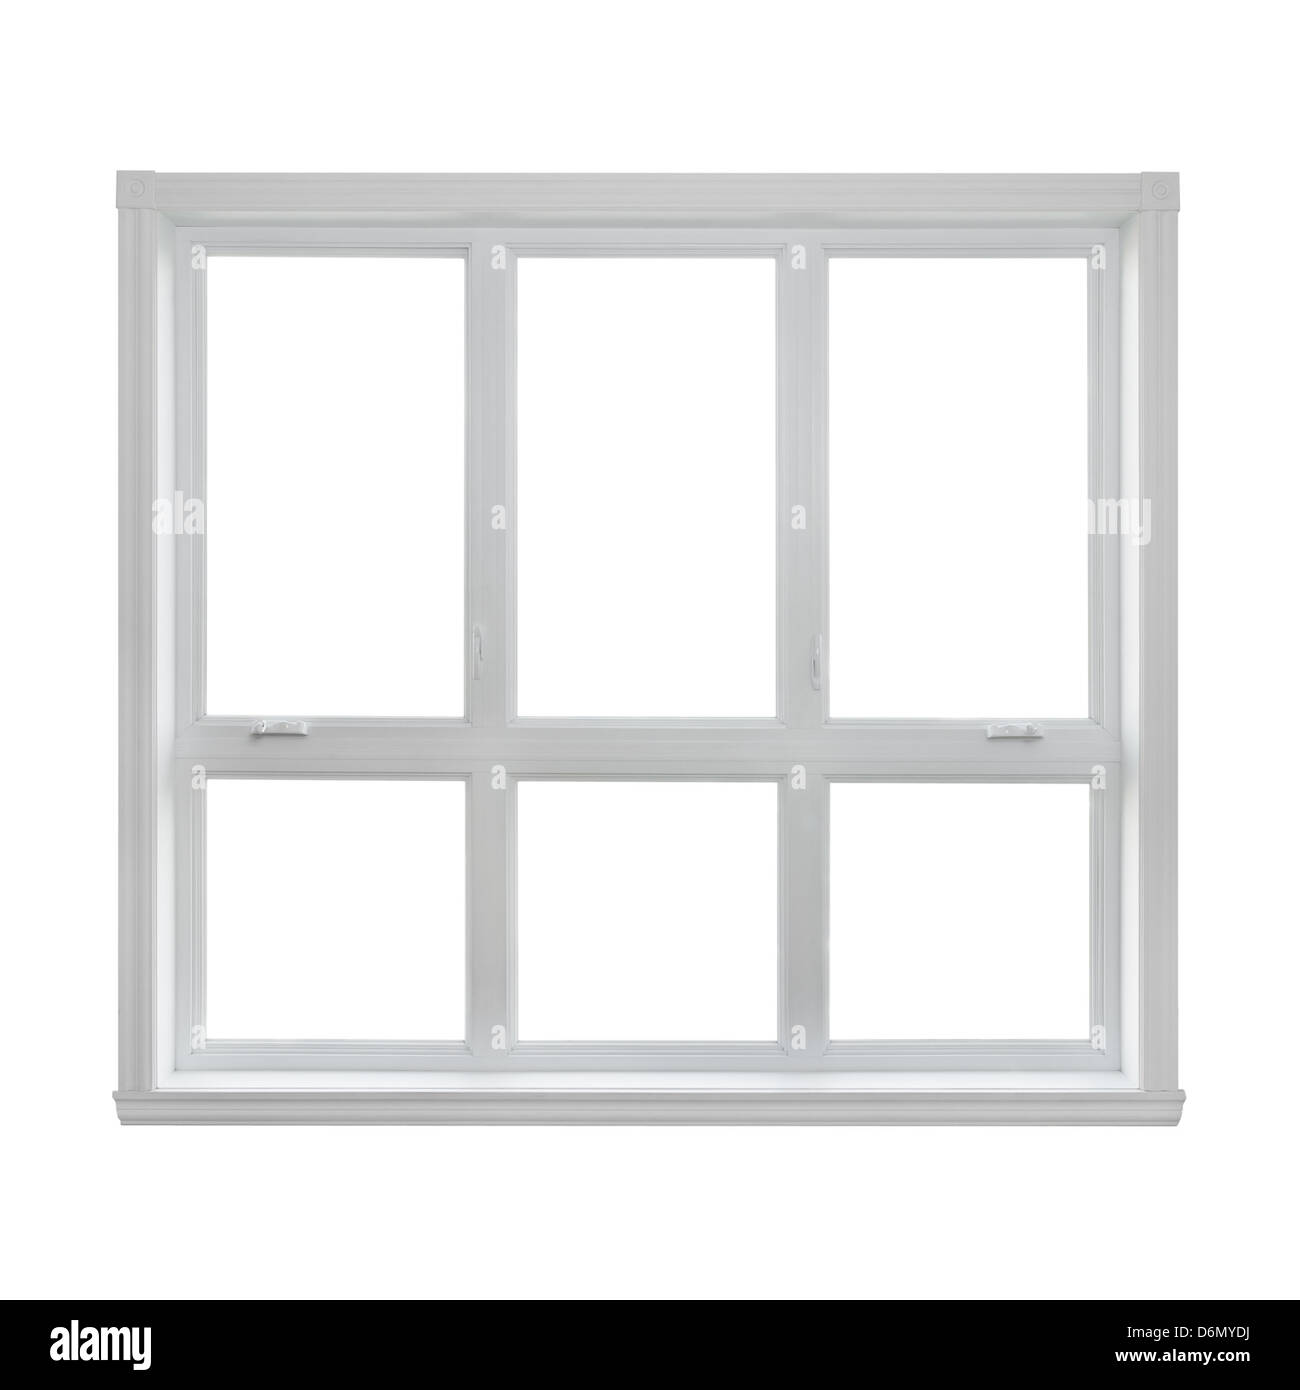 Modern window isolated on white background, with copy space. - Stock Image